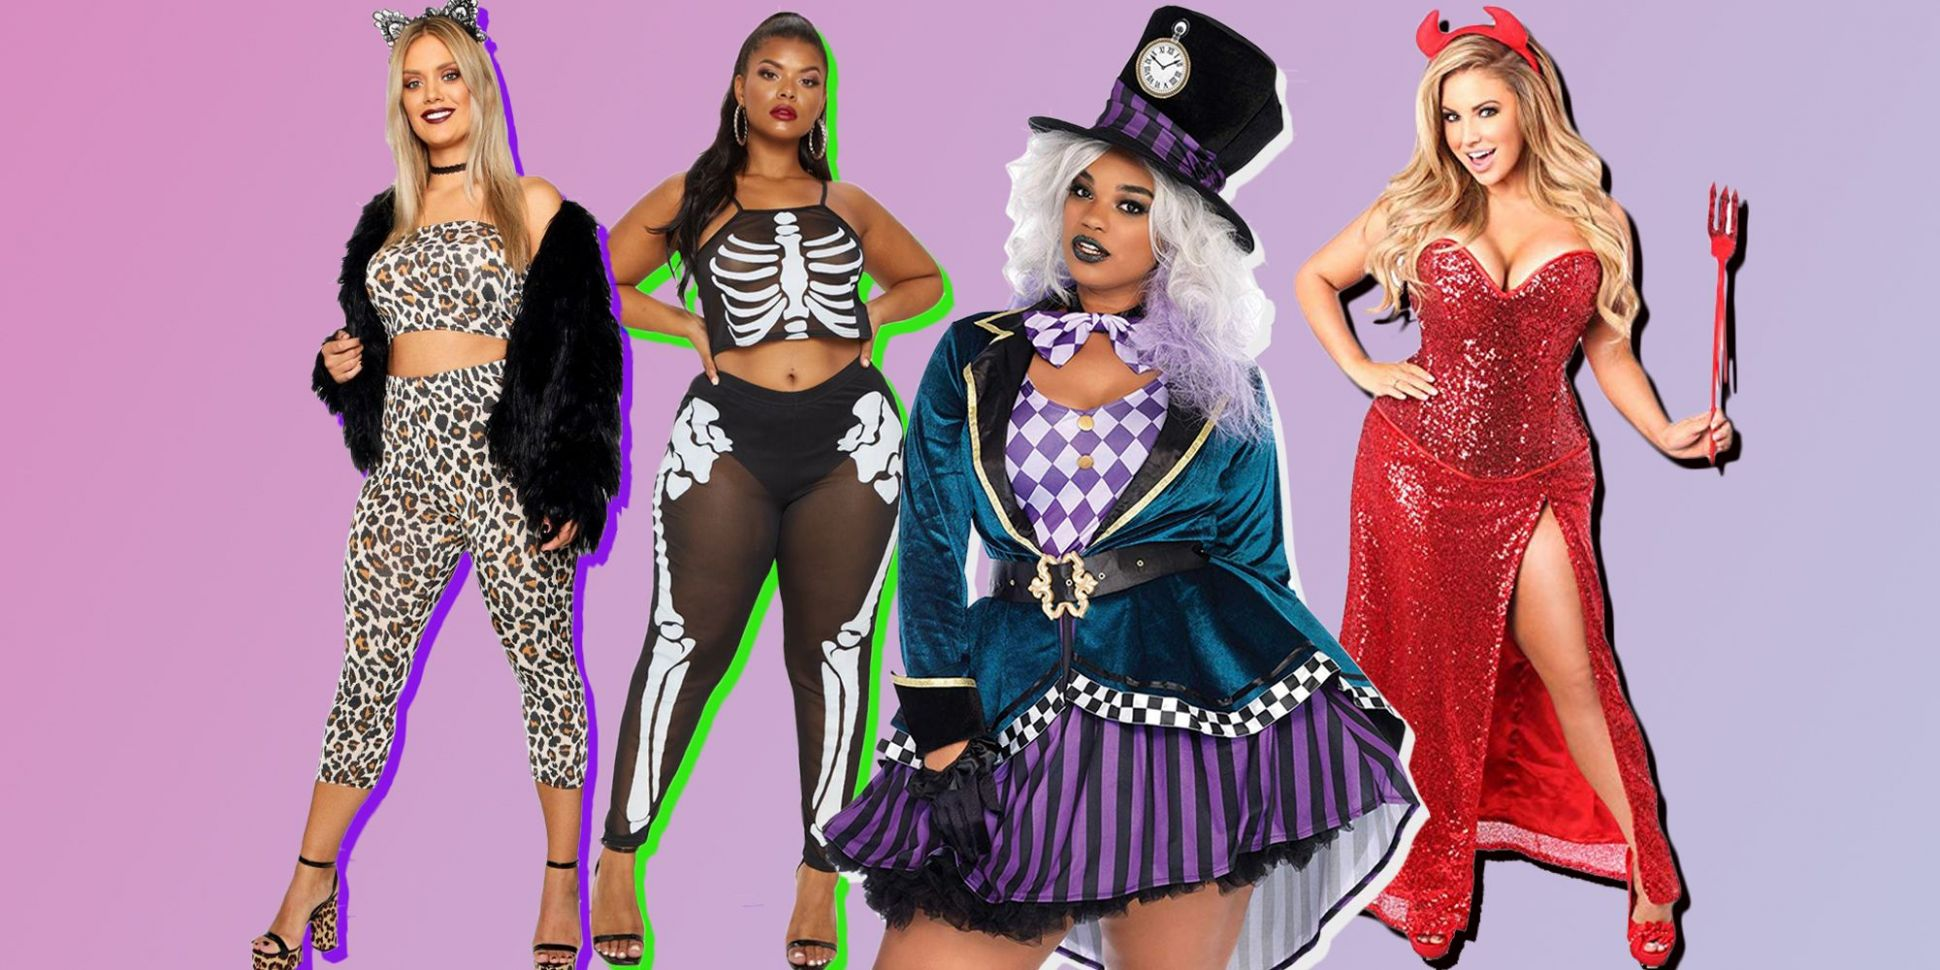 Plus Size Halloween Costumes - 8 Fancy Dress Costumes for Curves